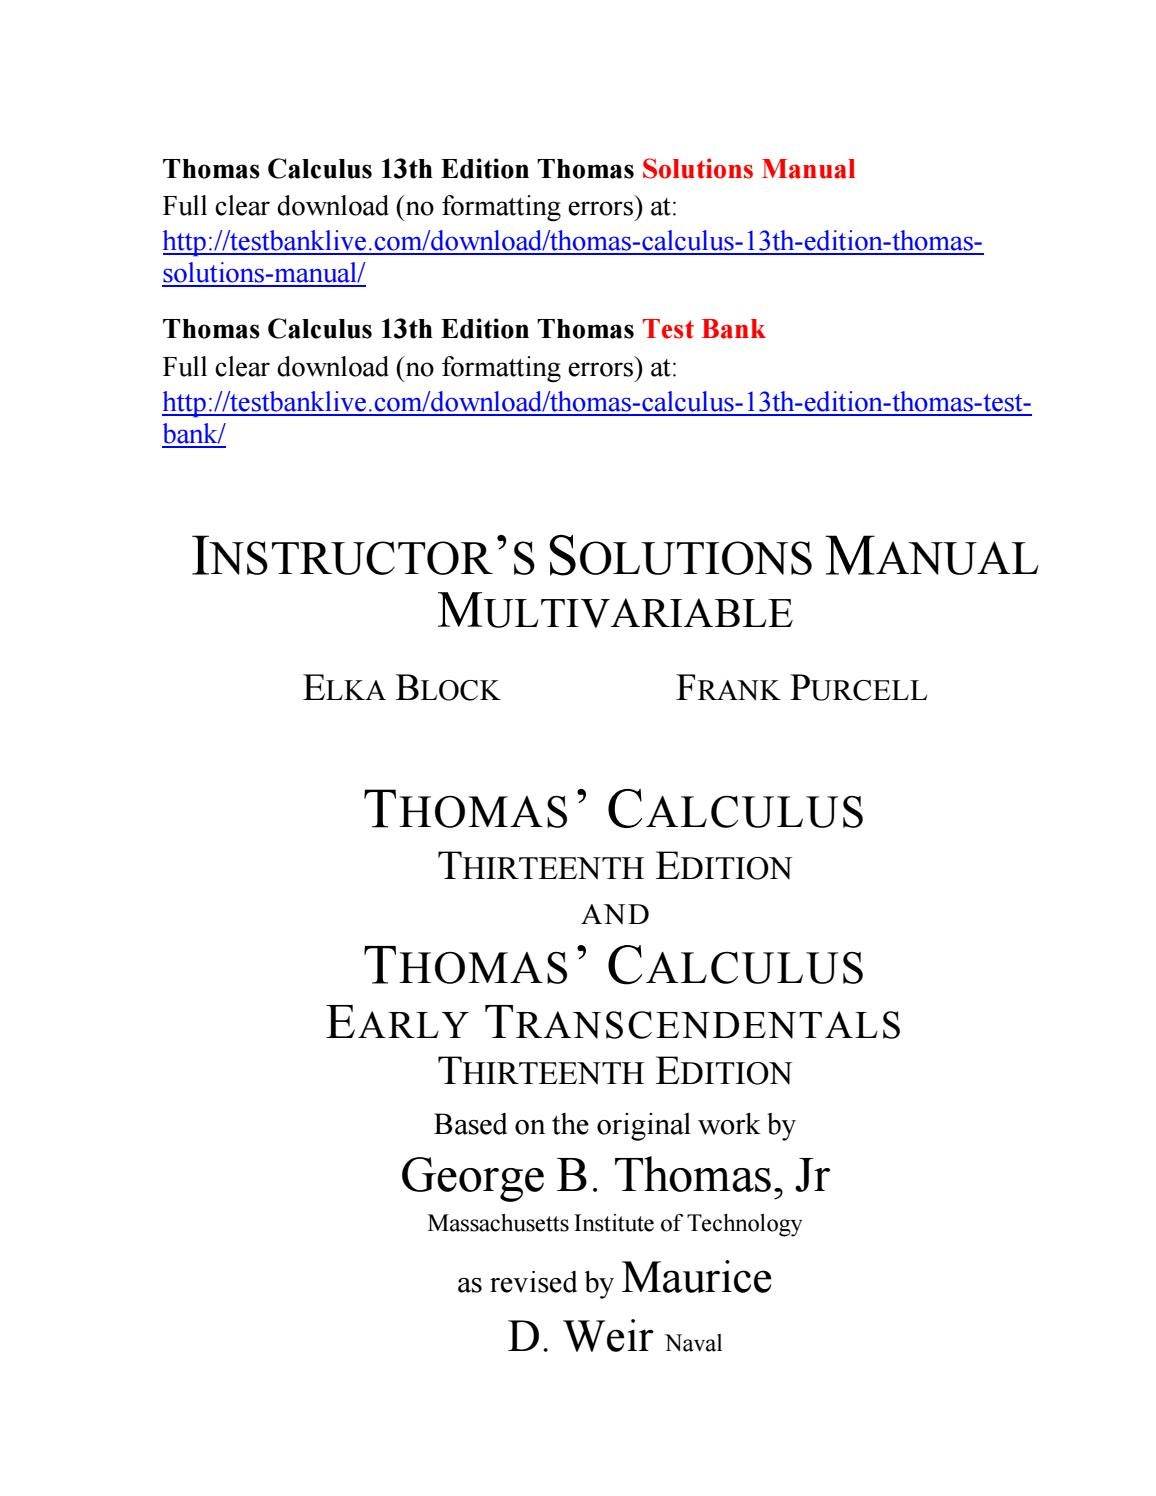 Thomas calculus 13th edition thomas solutions manual by Harvey11ss - issuu